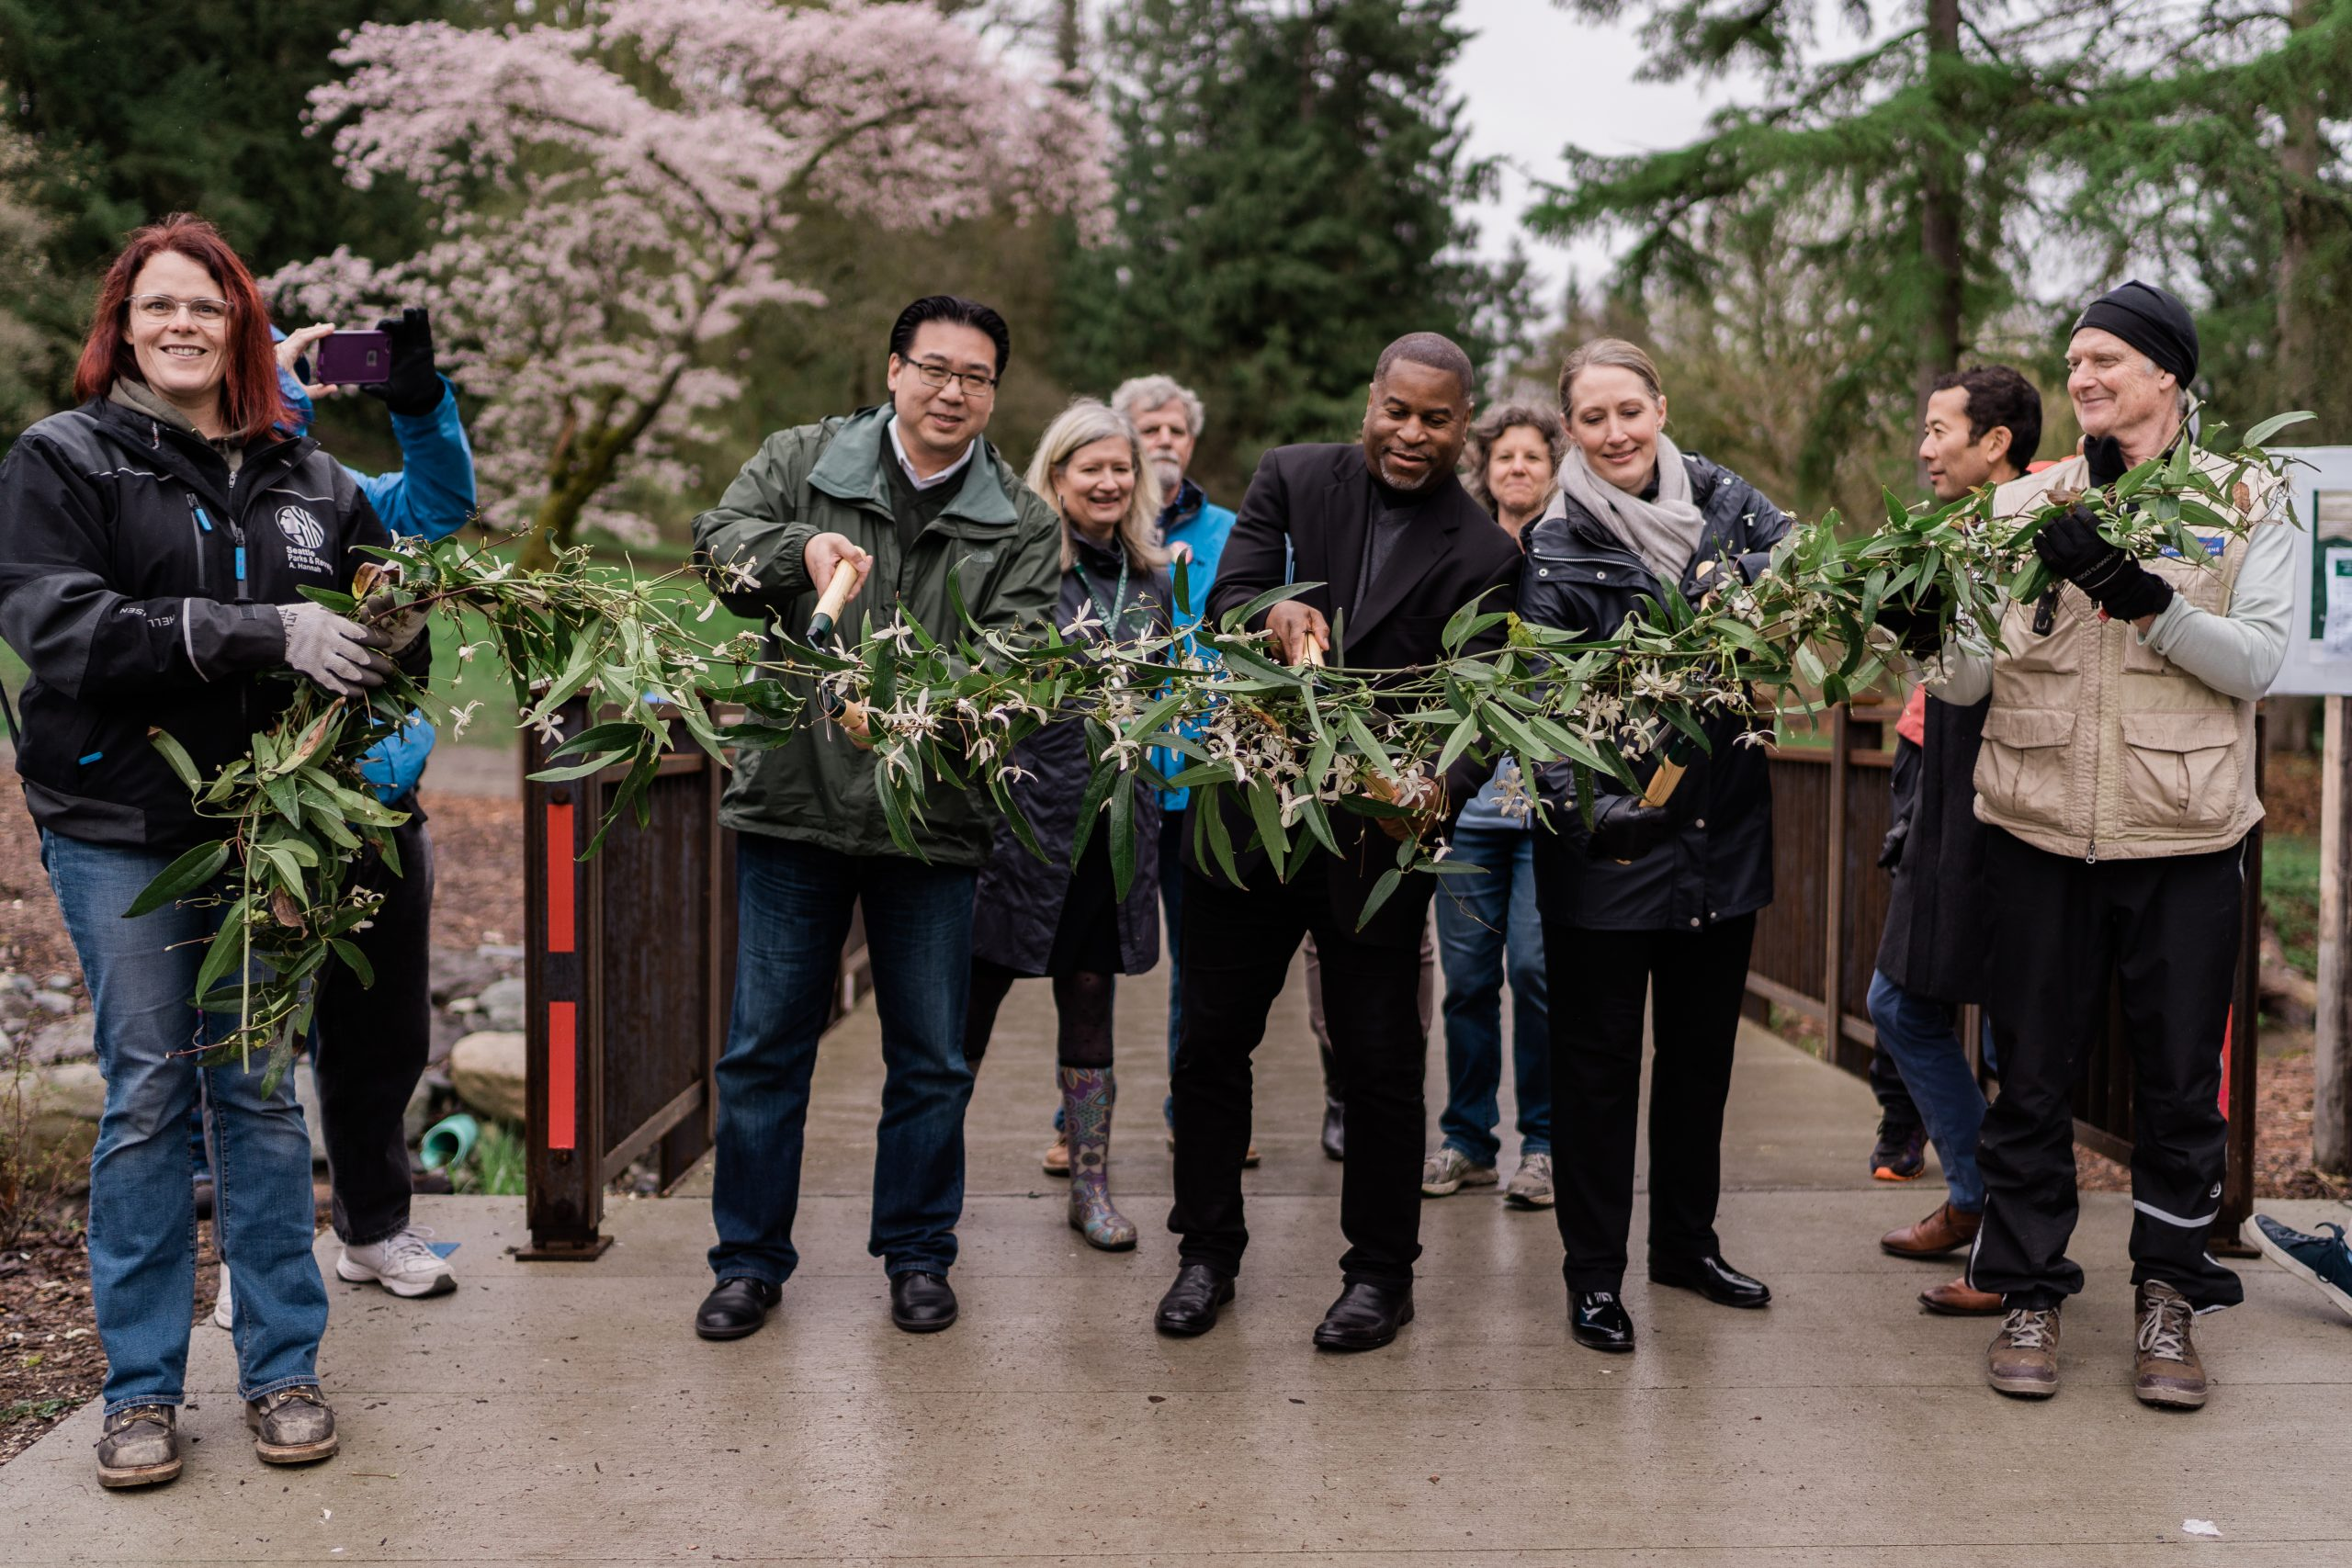 Arboretum Partners do a vine cutting ceremony to open the Arboretum's new Loop Trail